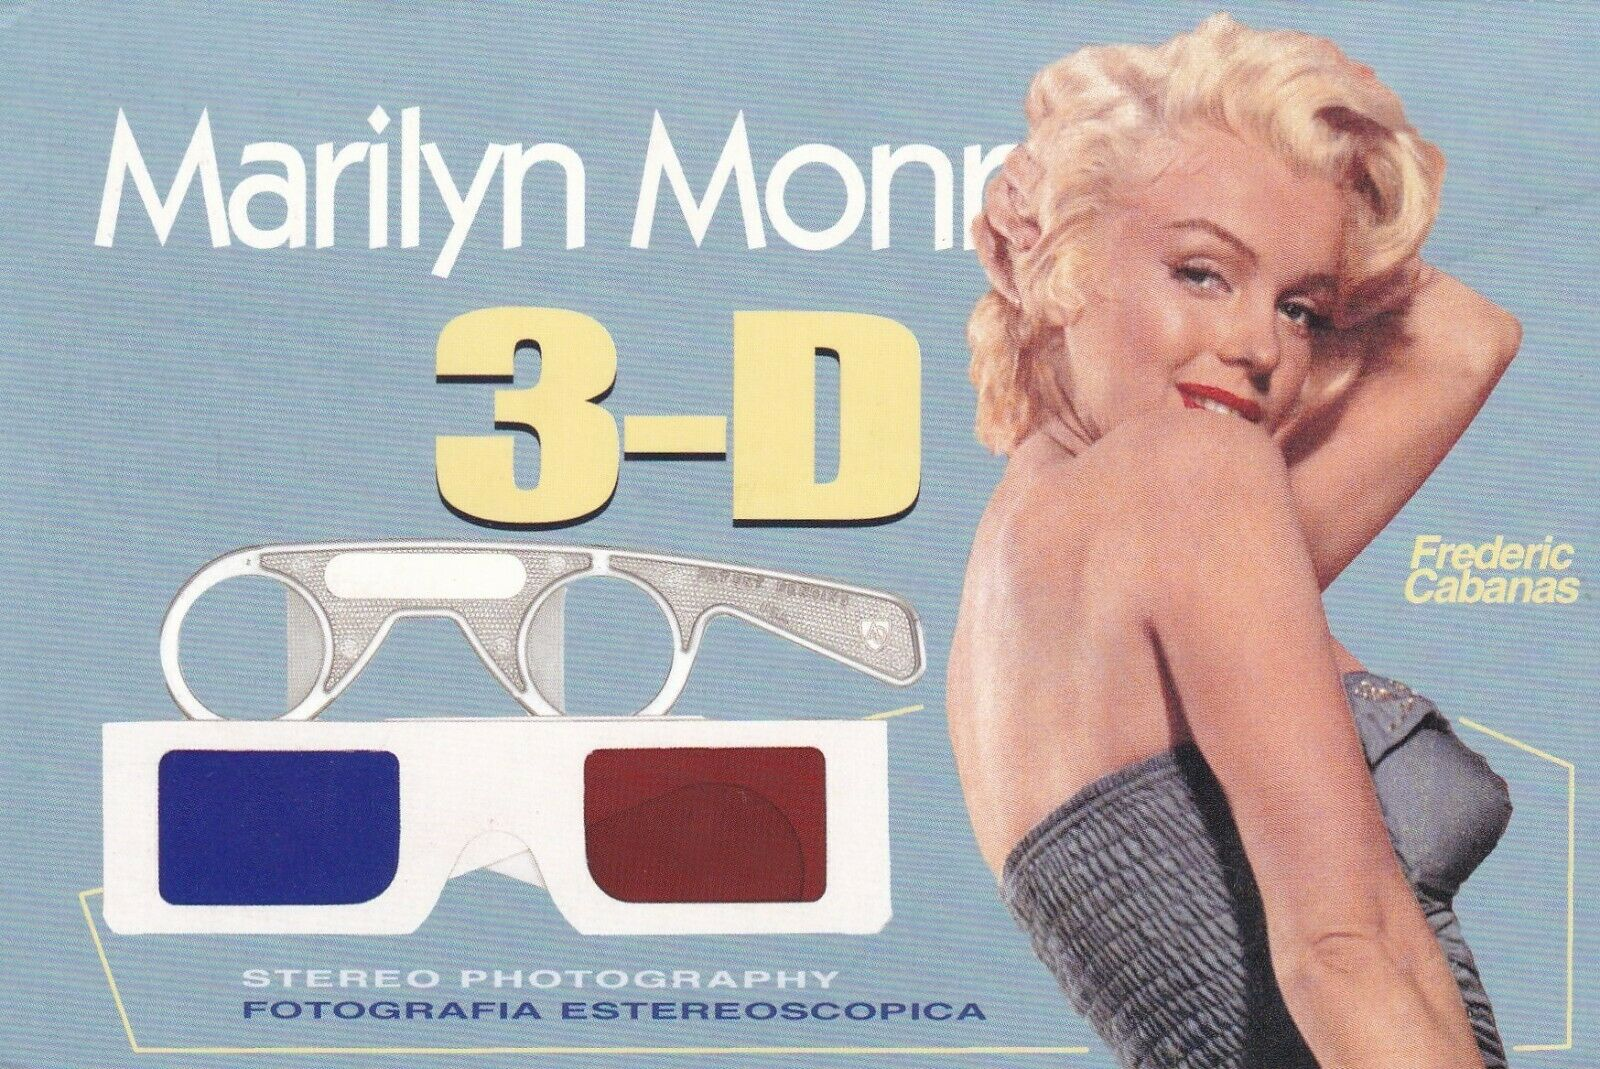 MARILYN MONROE - 3-D STEREO PHOTOGRAPHY Book 2002 ADVERTISING Postcard - $0.99